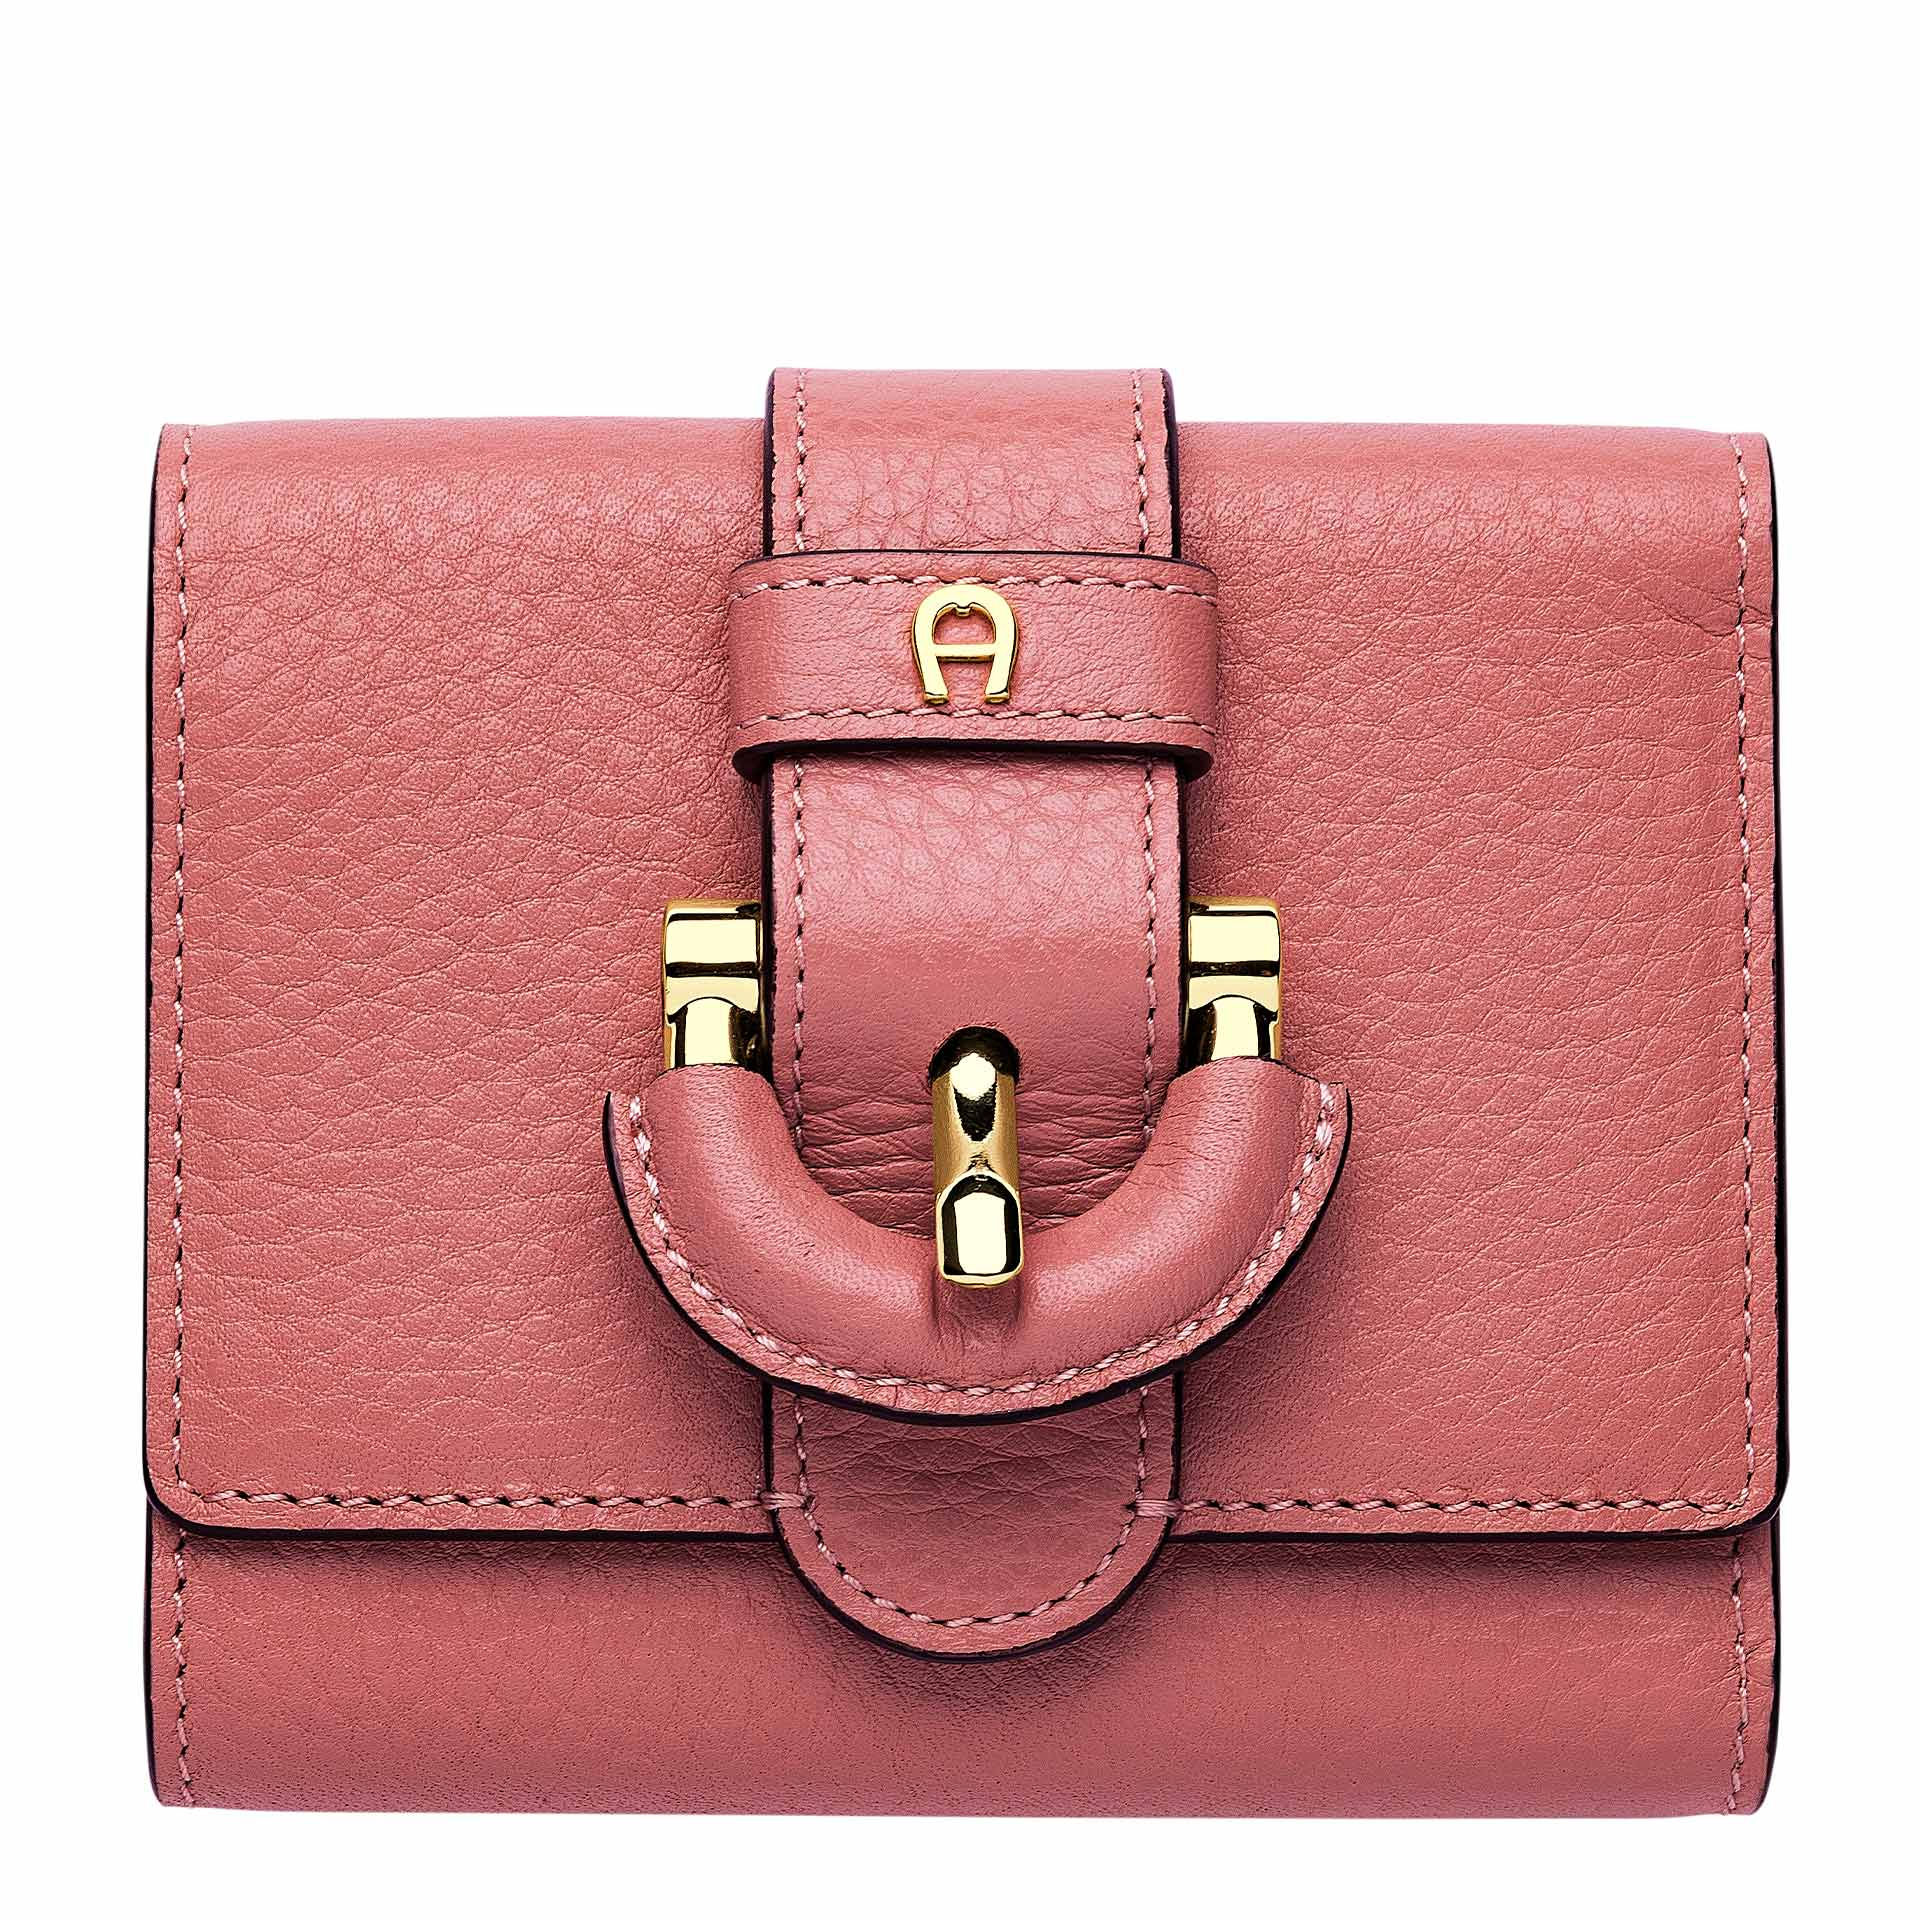 Aigner Kira Damen Geldbörse dusty rose